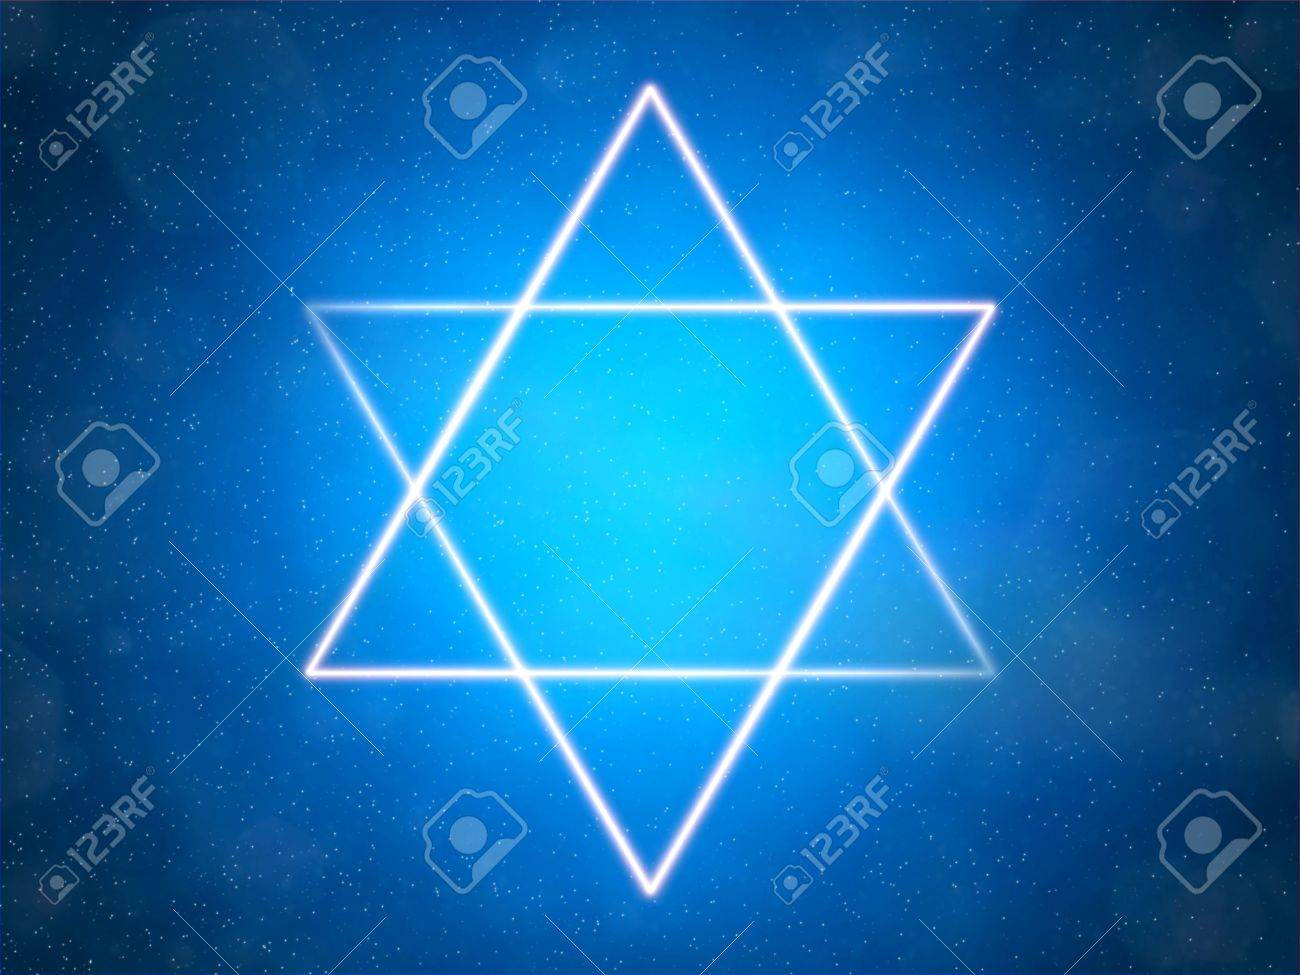 Star of David on a blue background among the stars Stock Photo - 7593504